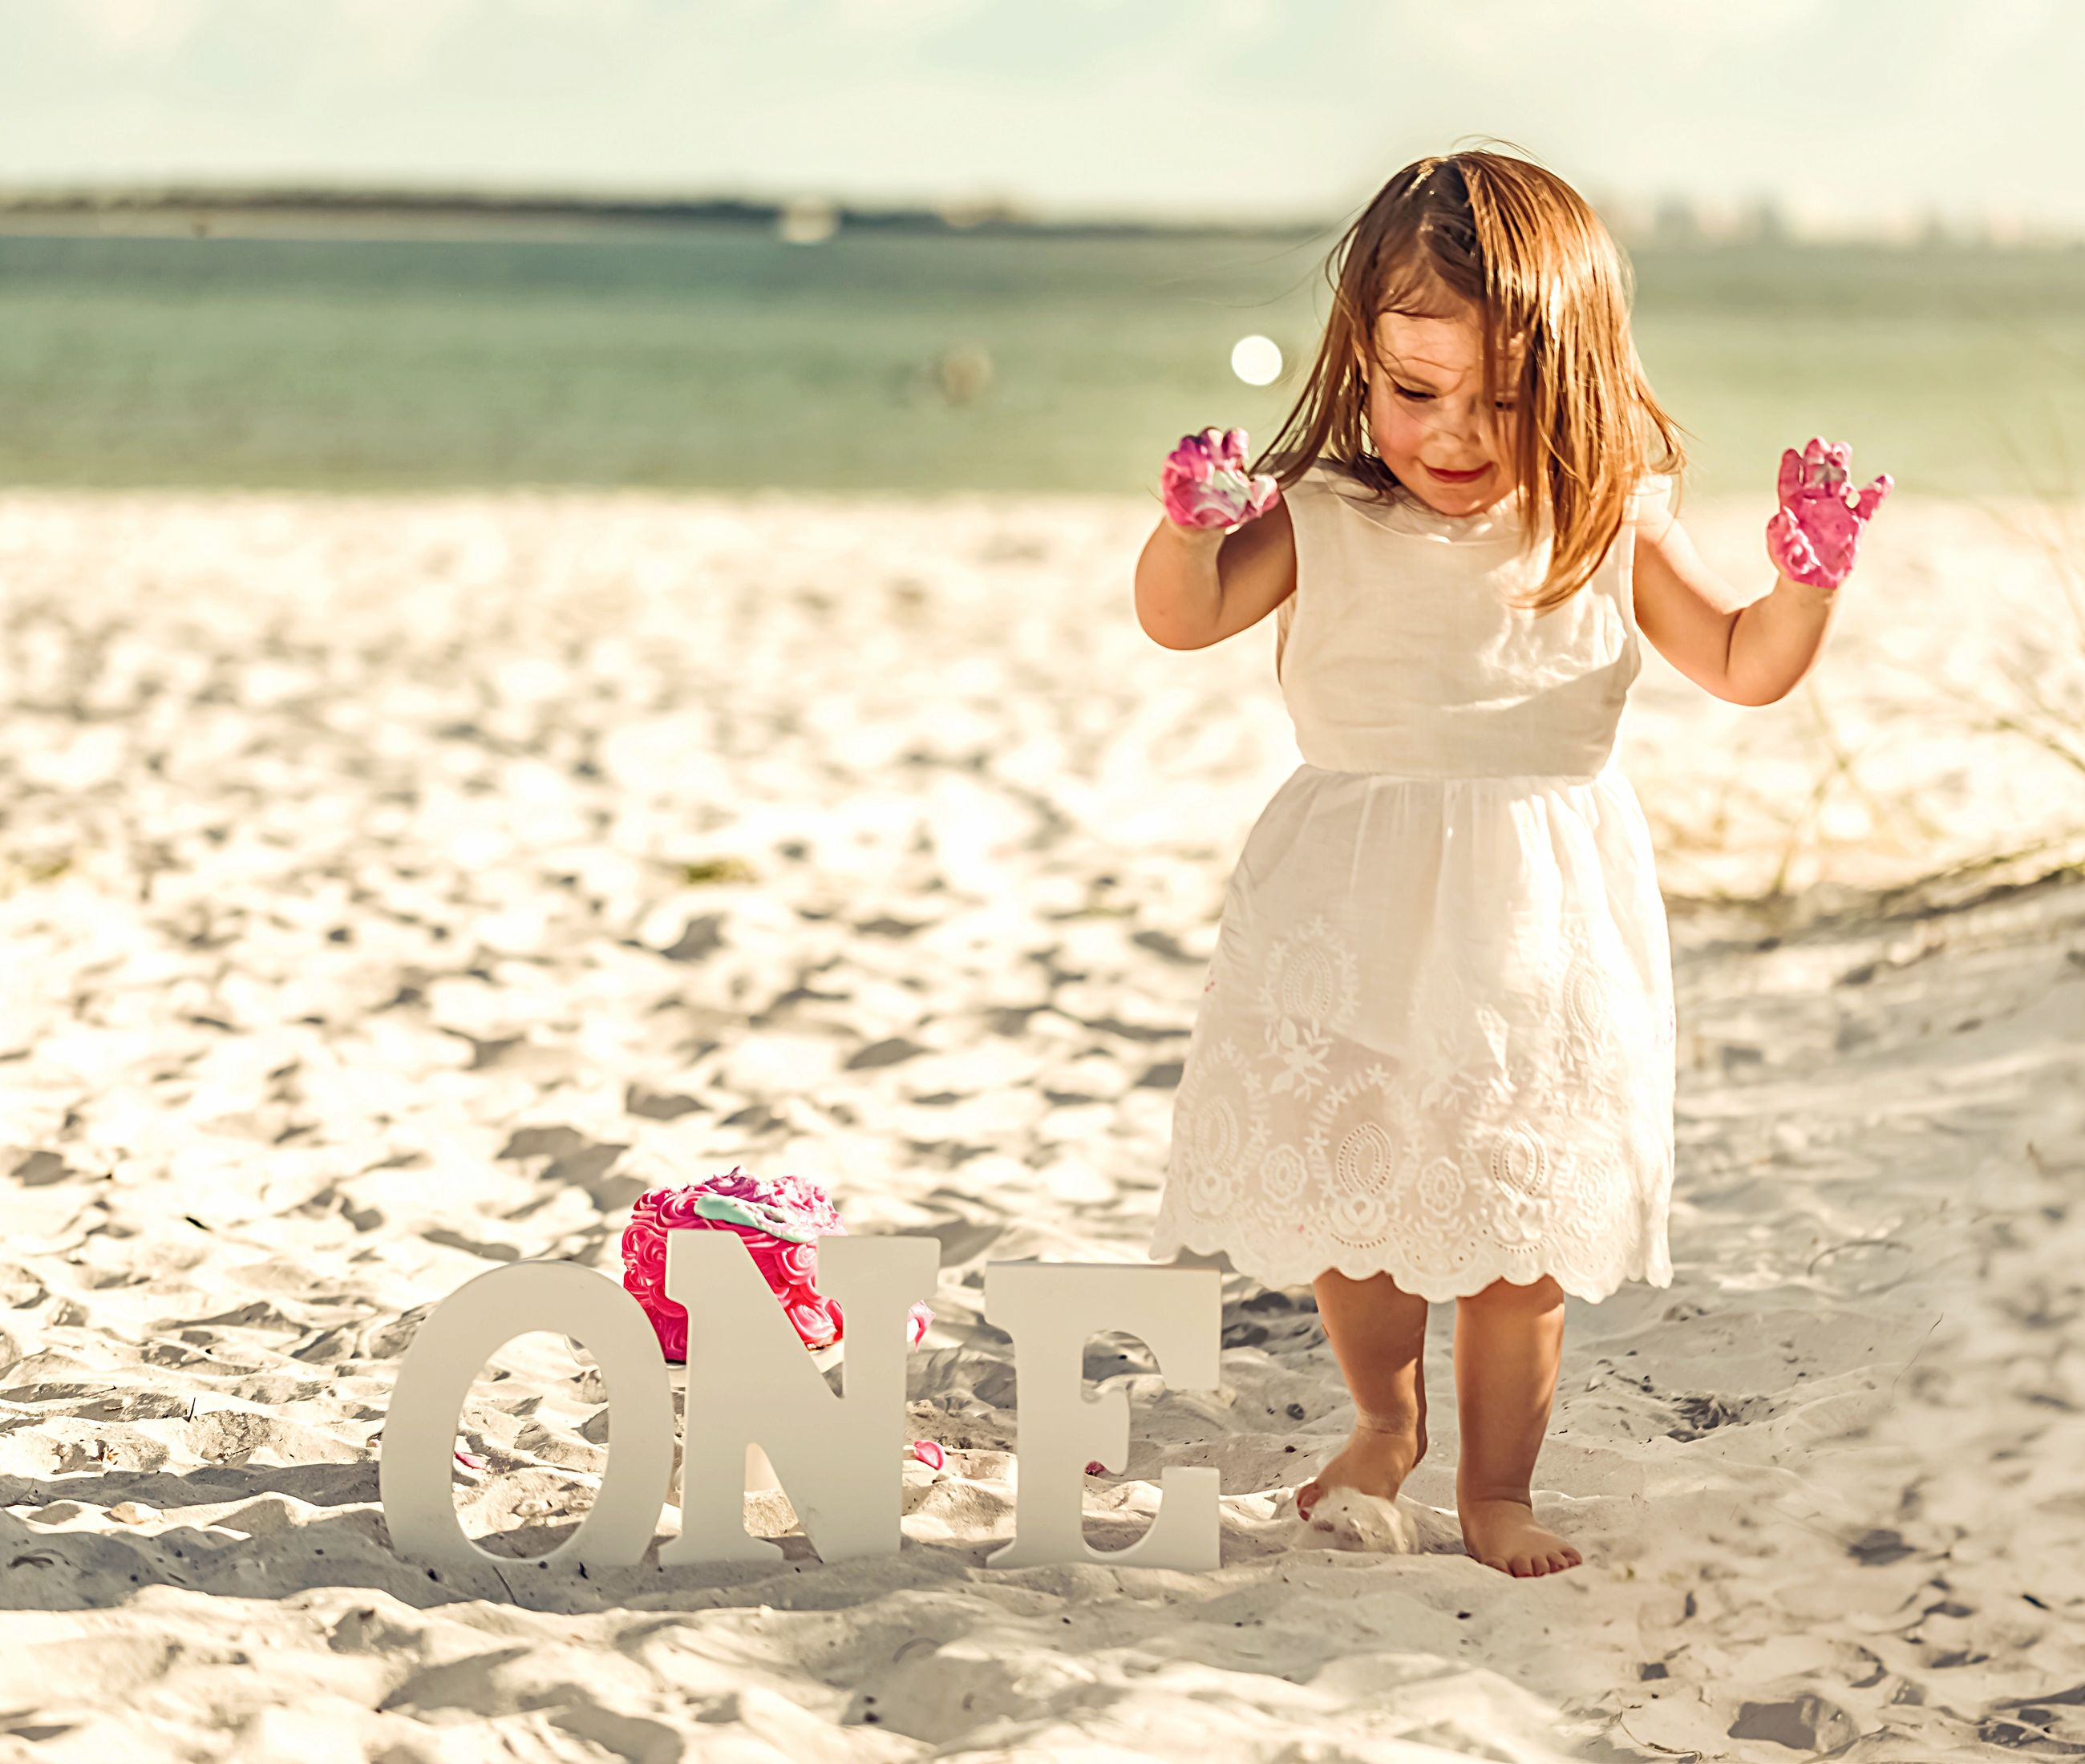 land, beach, child, childhood, one person, nature, leisure activity, real people, beauty in nature, girls, sunlight, full length, standing, women, lifestyles, flower, sea, hairstyle, innocence, outdoors